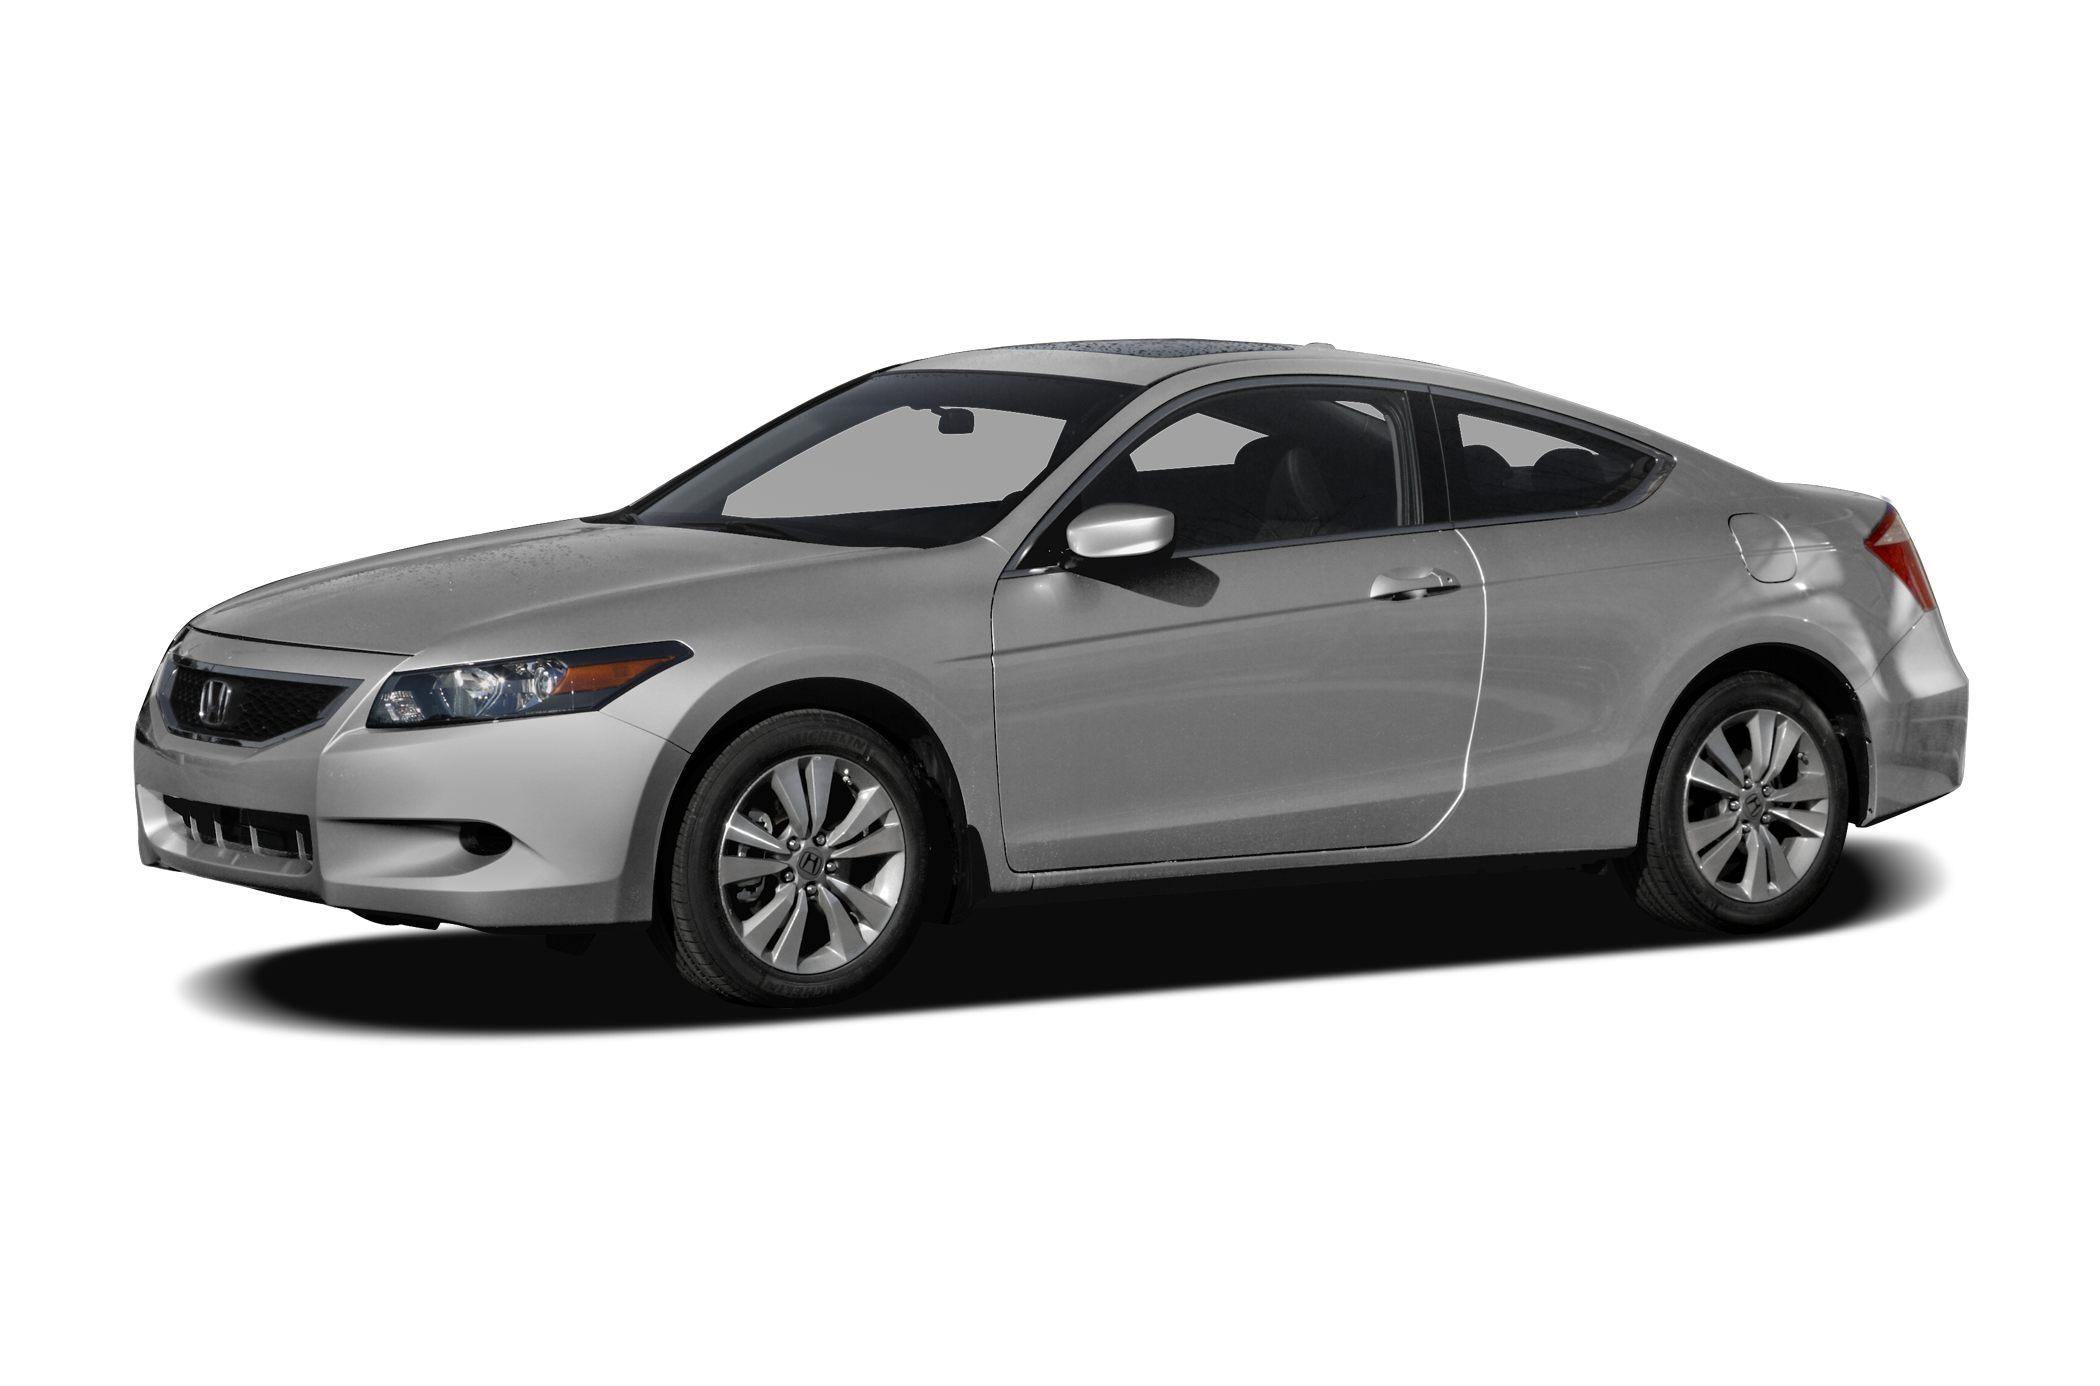 2008 Honda Accord 24 EX OUR PRICESYoure probably wondering why our prices are so much lower tha